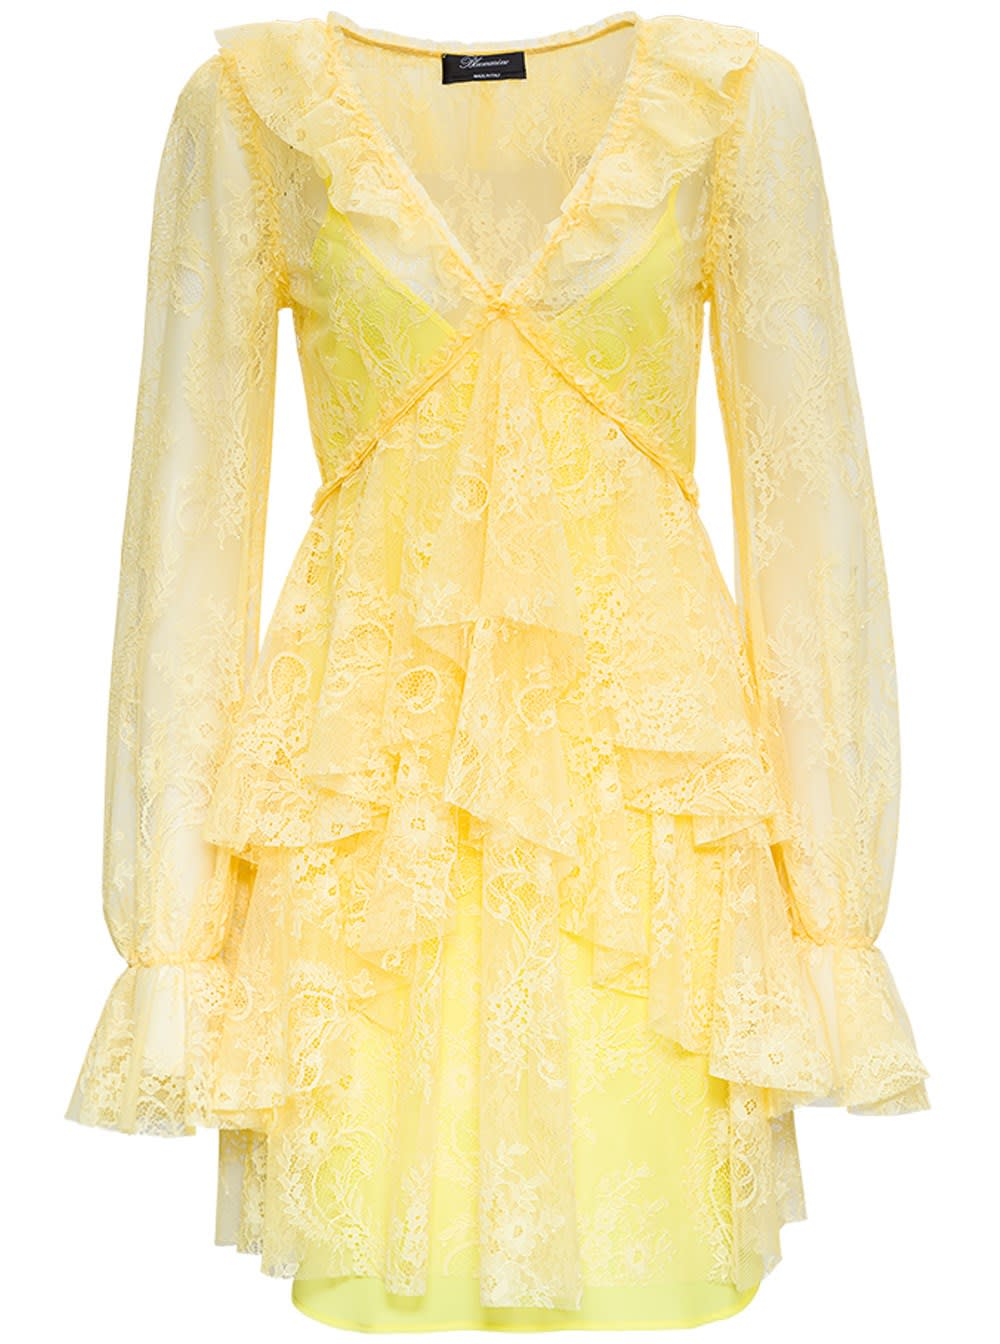 Blumarine Dresses YELLOW LACE DRESS WITH RUFFLES DETAIL